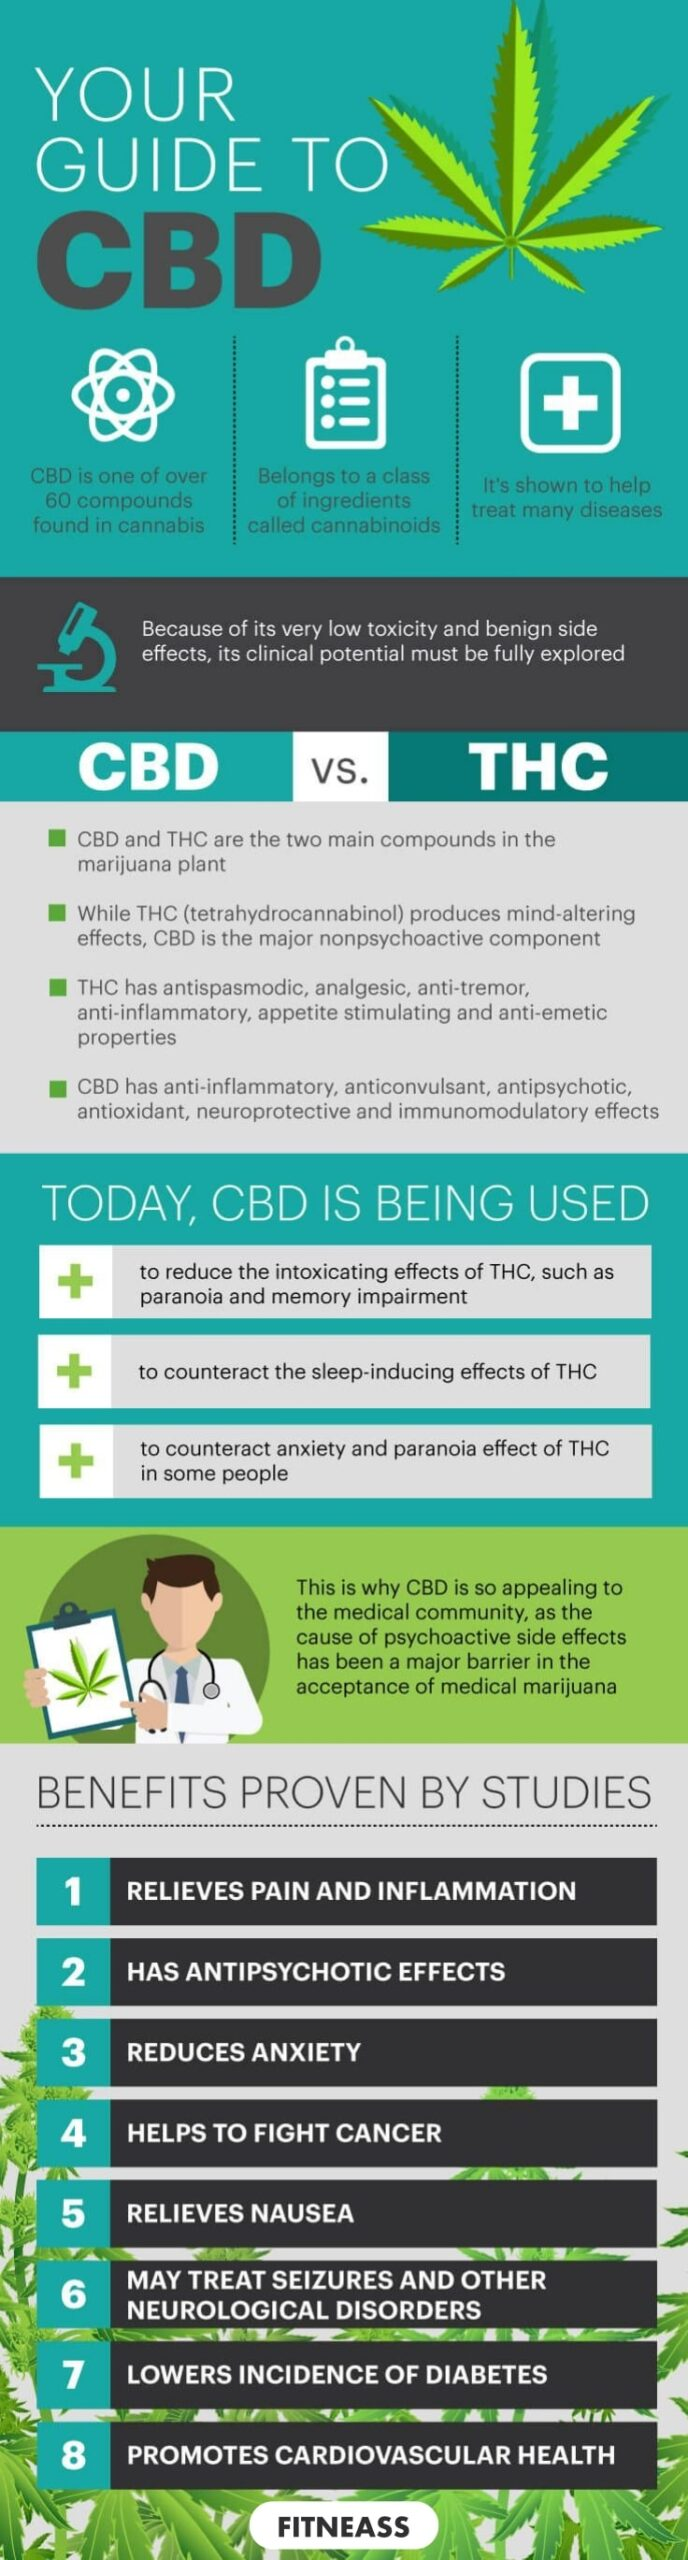 Your Guide To CBD - Infographic